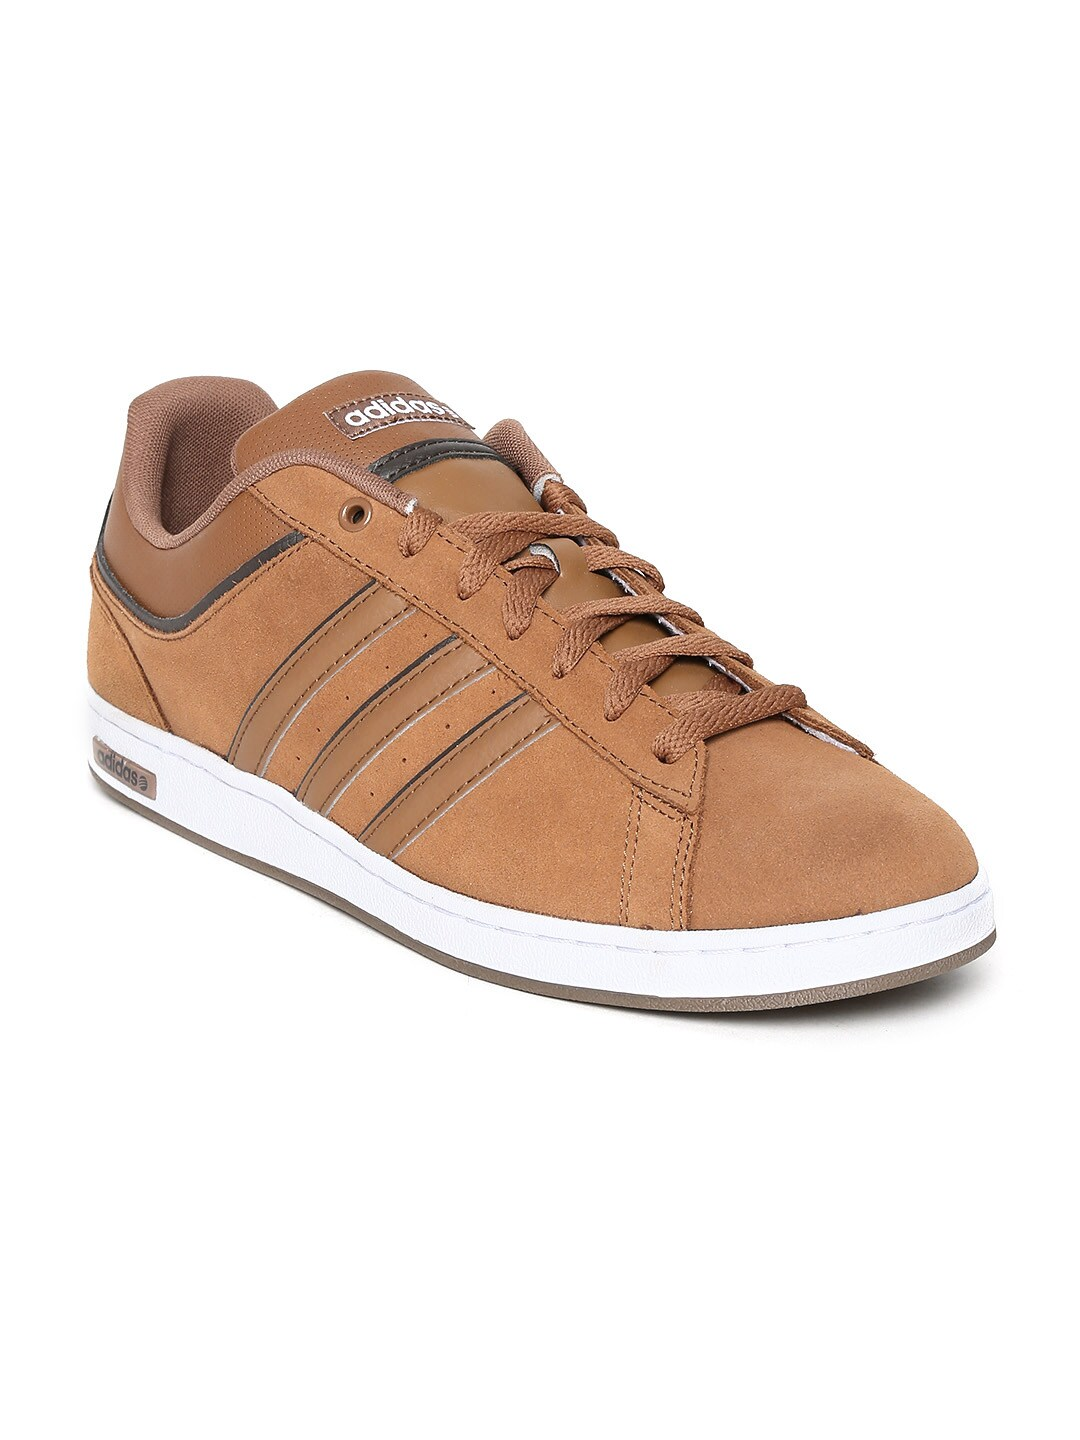 Adidas Neo Derby Set Synthetic